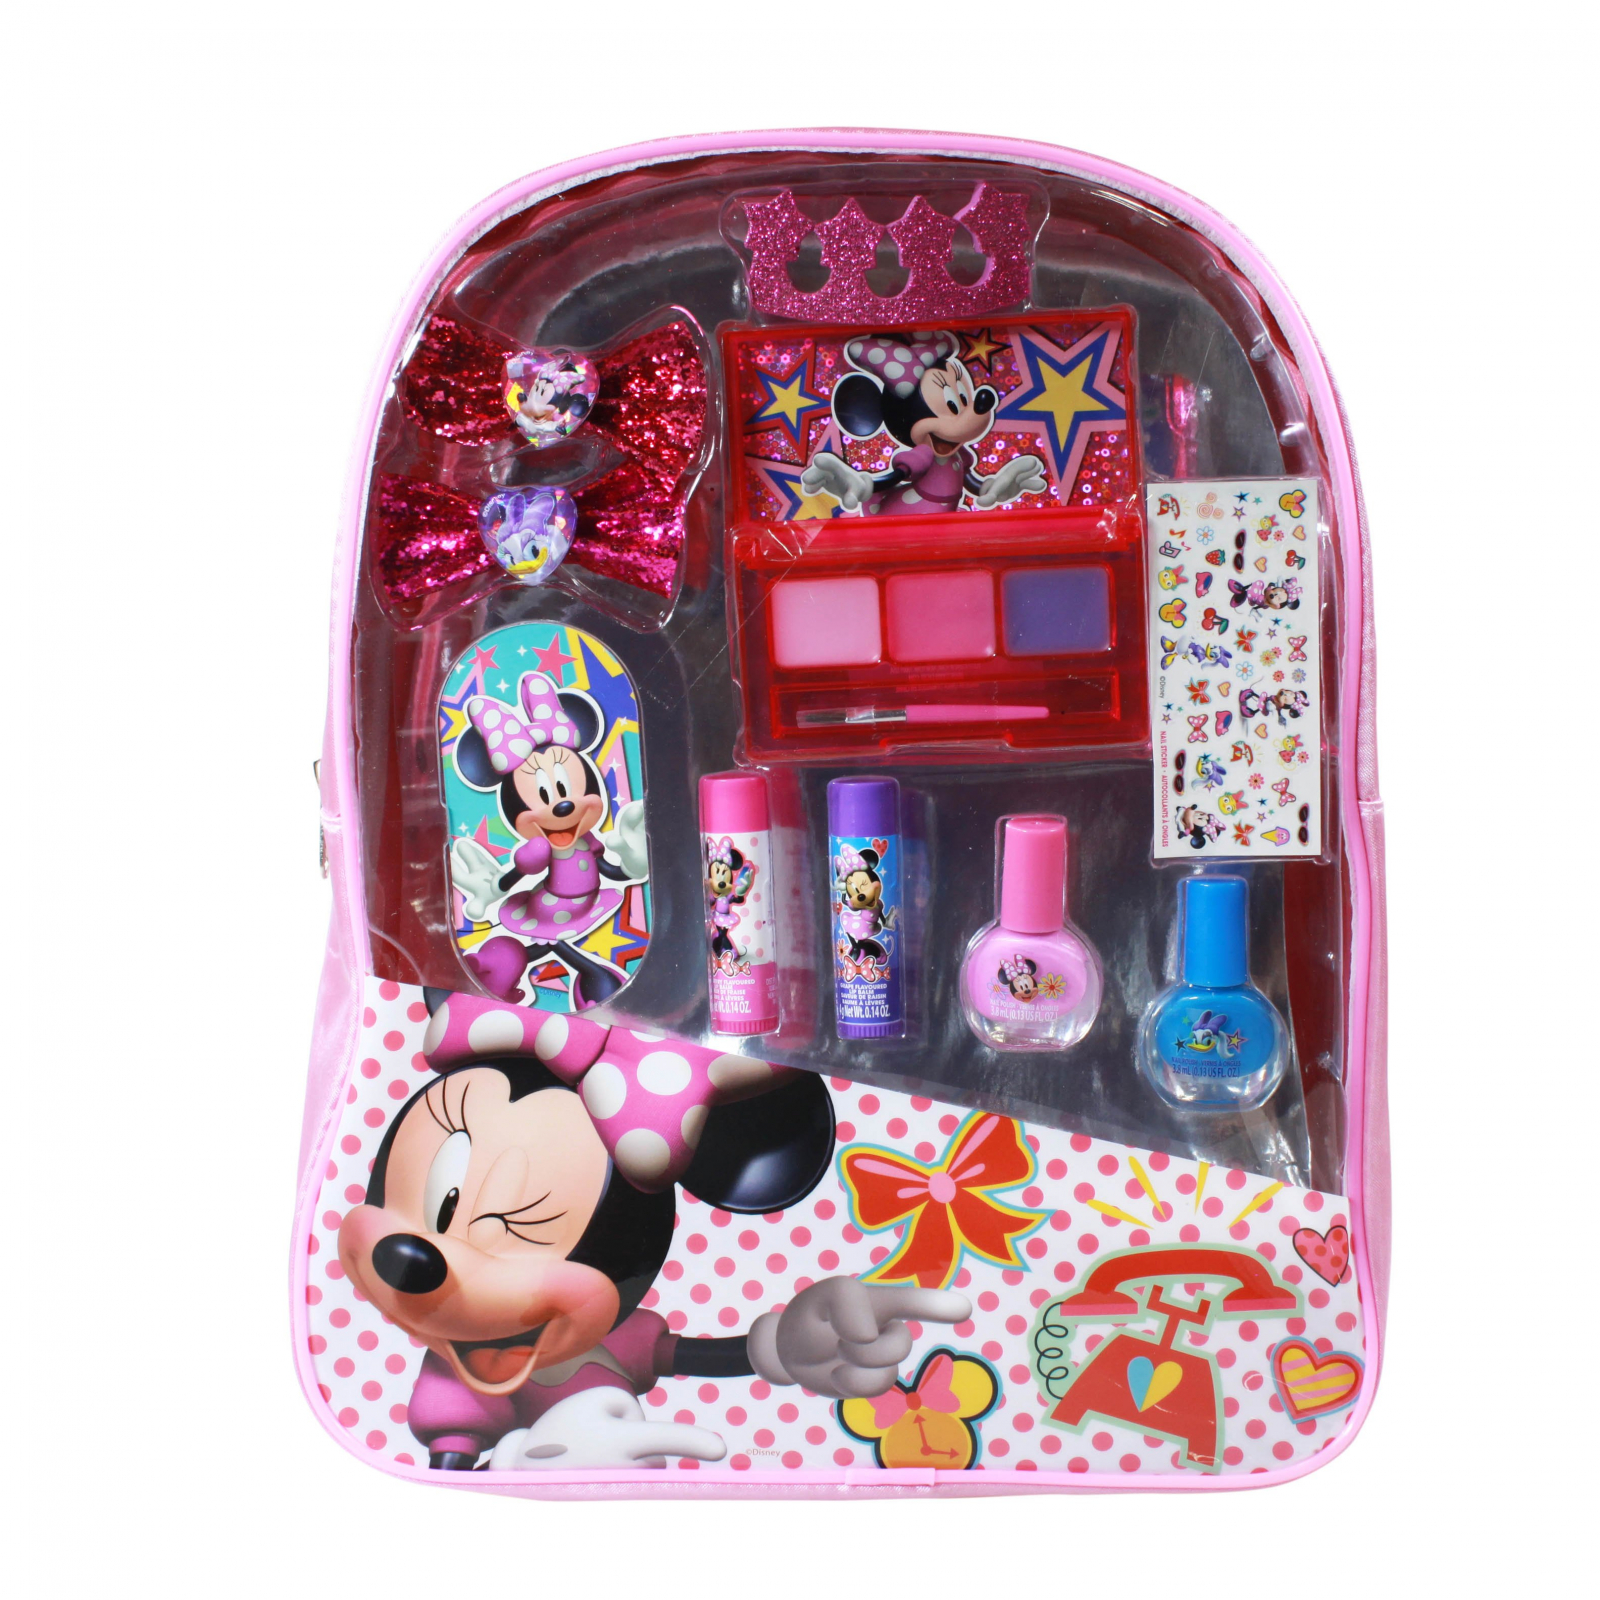 Disney Minnie Mouse Cosmetics Set